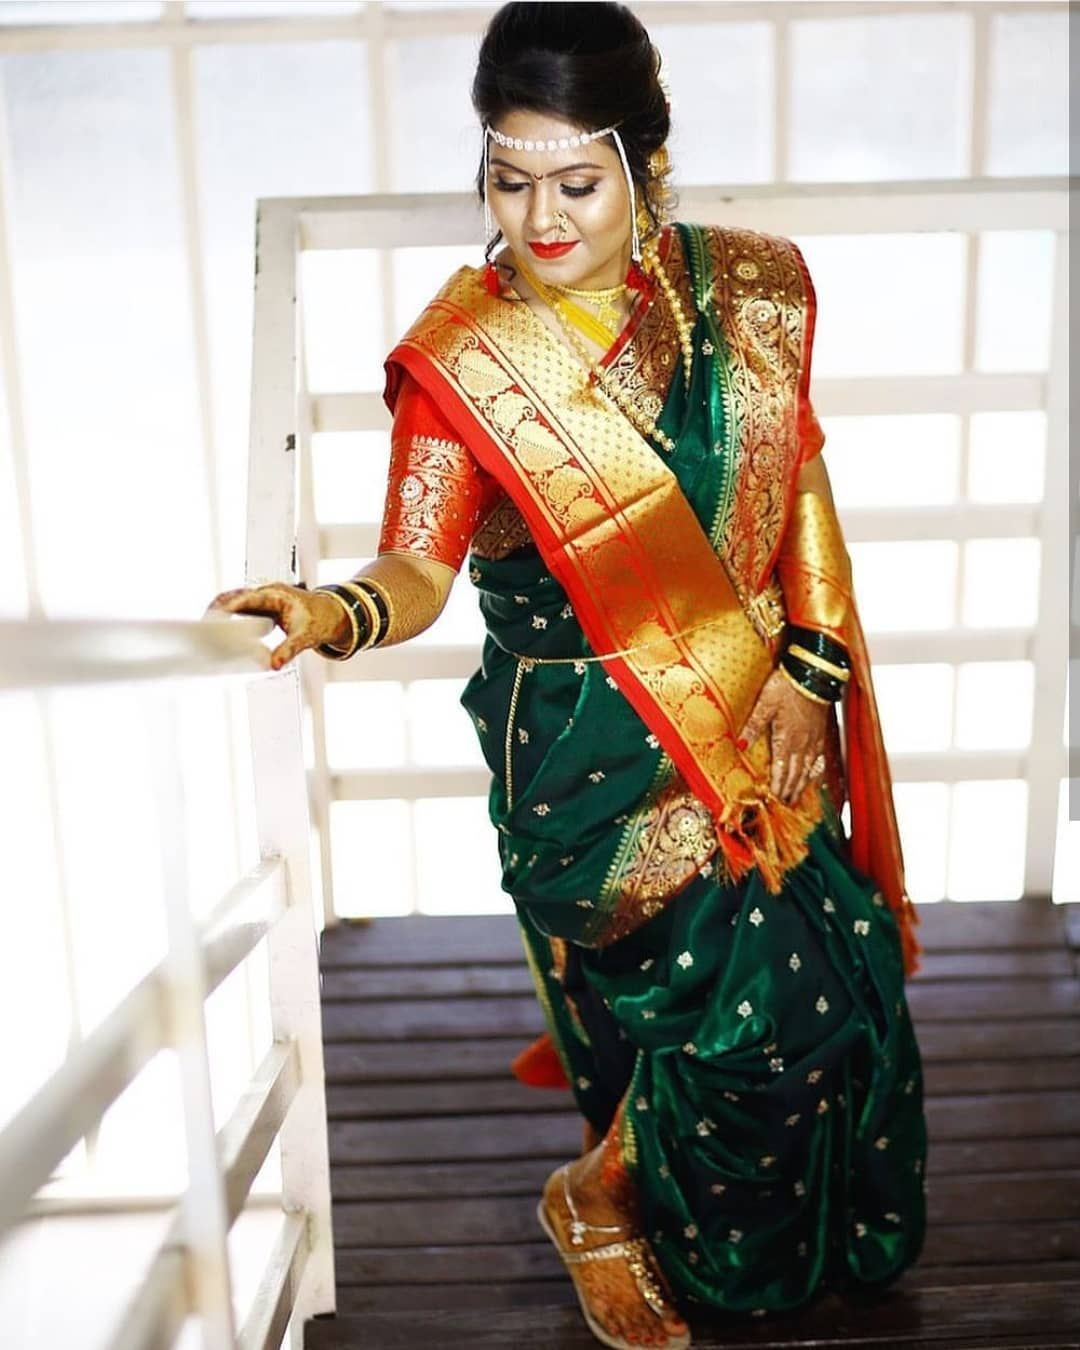 posing on the stairs with a traditional saree